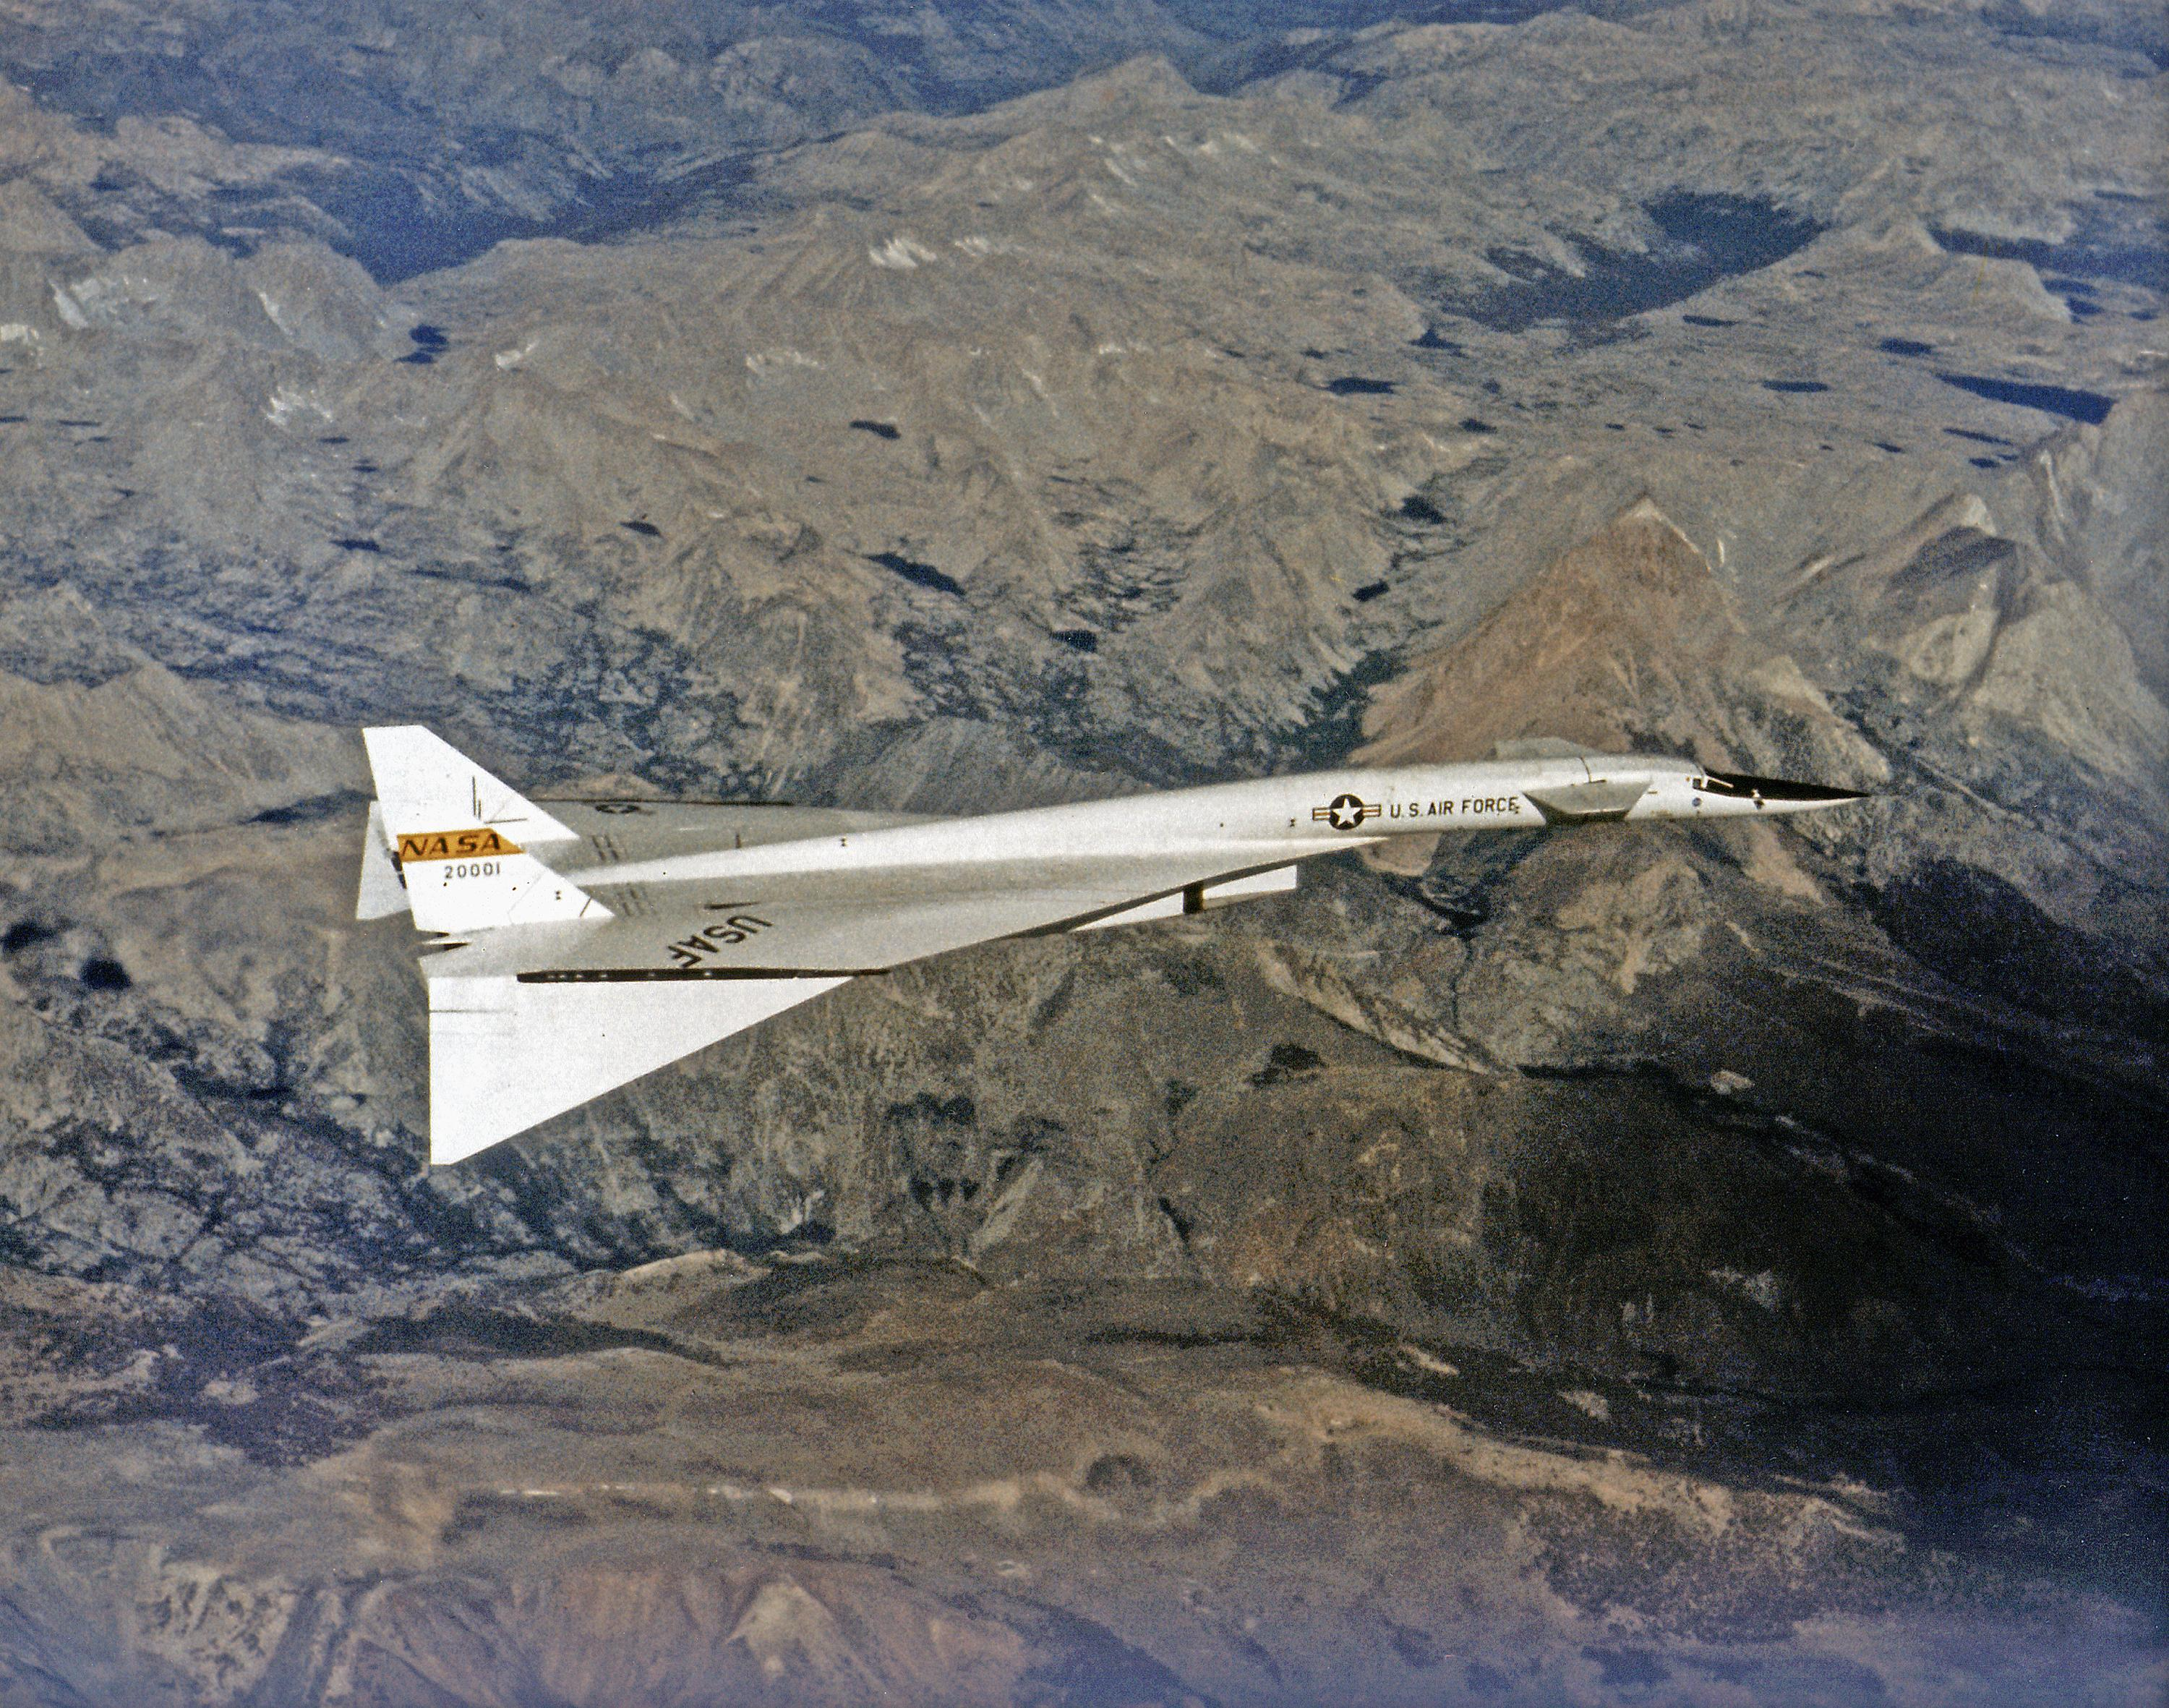 Depiction of North American XB-70 Valkyrie